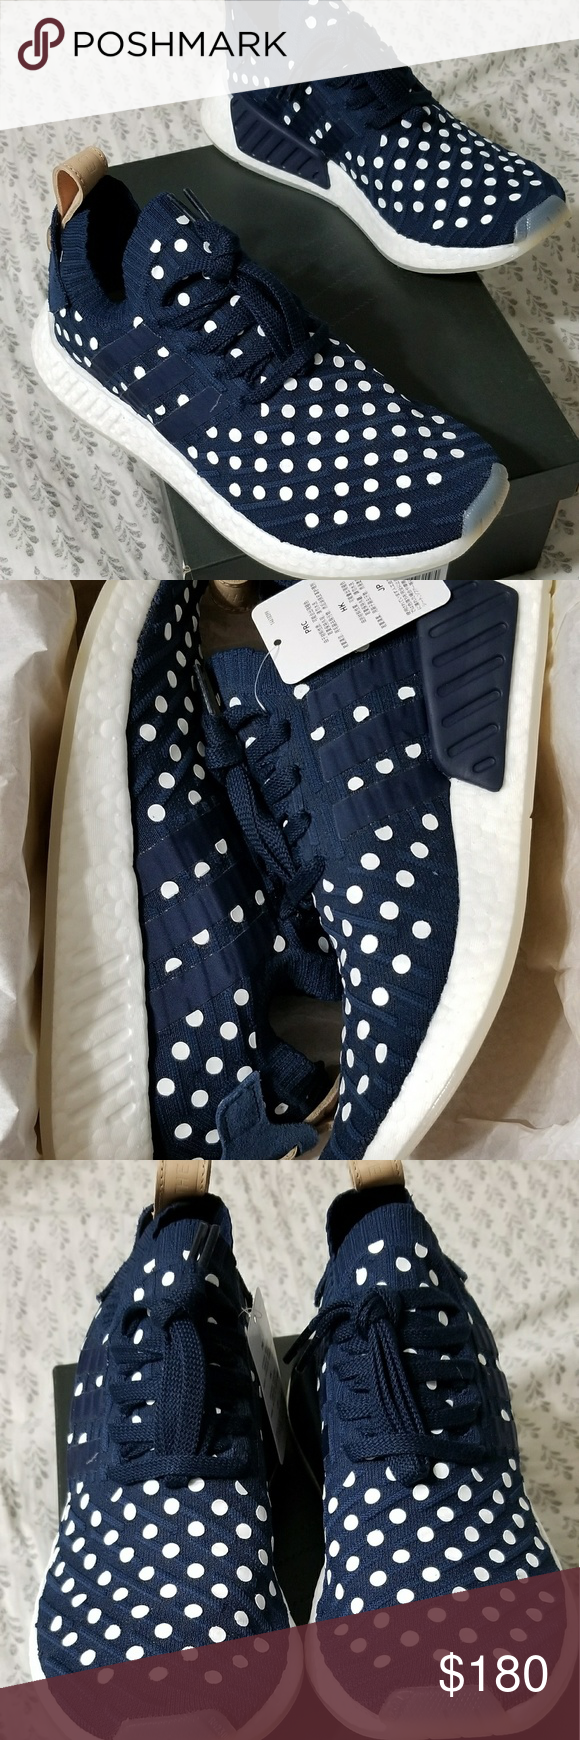 e38c3bada Adidas NMD R2 PK Polka dot New in original box Adidas nmd r2 primeknit  polka dot women s size 8.5 never been worn. Deadstock. adidas Shoes Sneakers